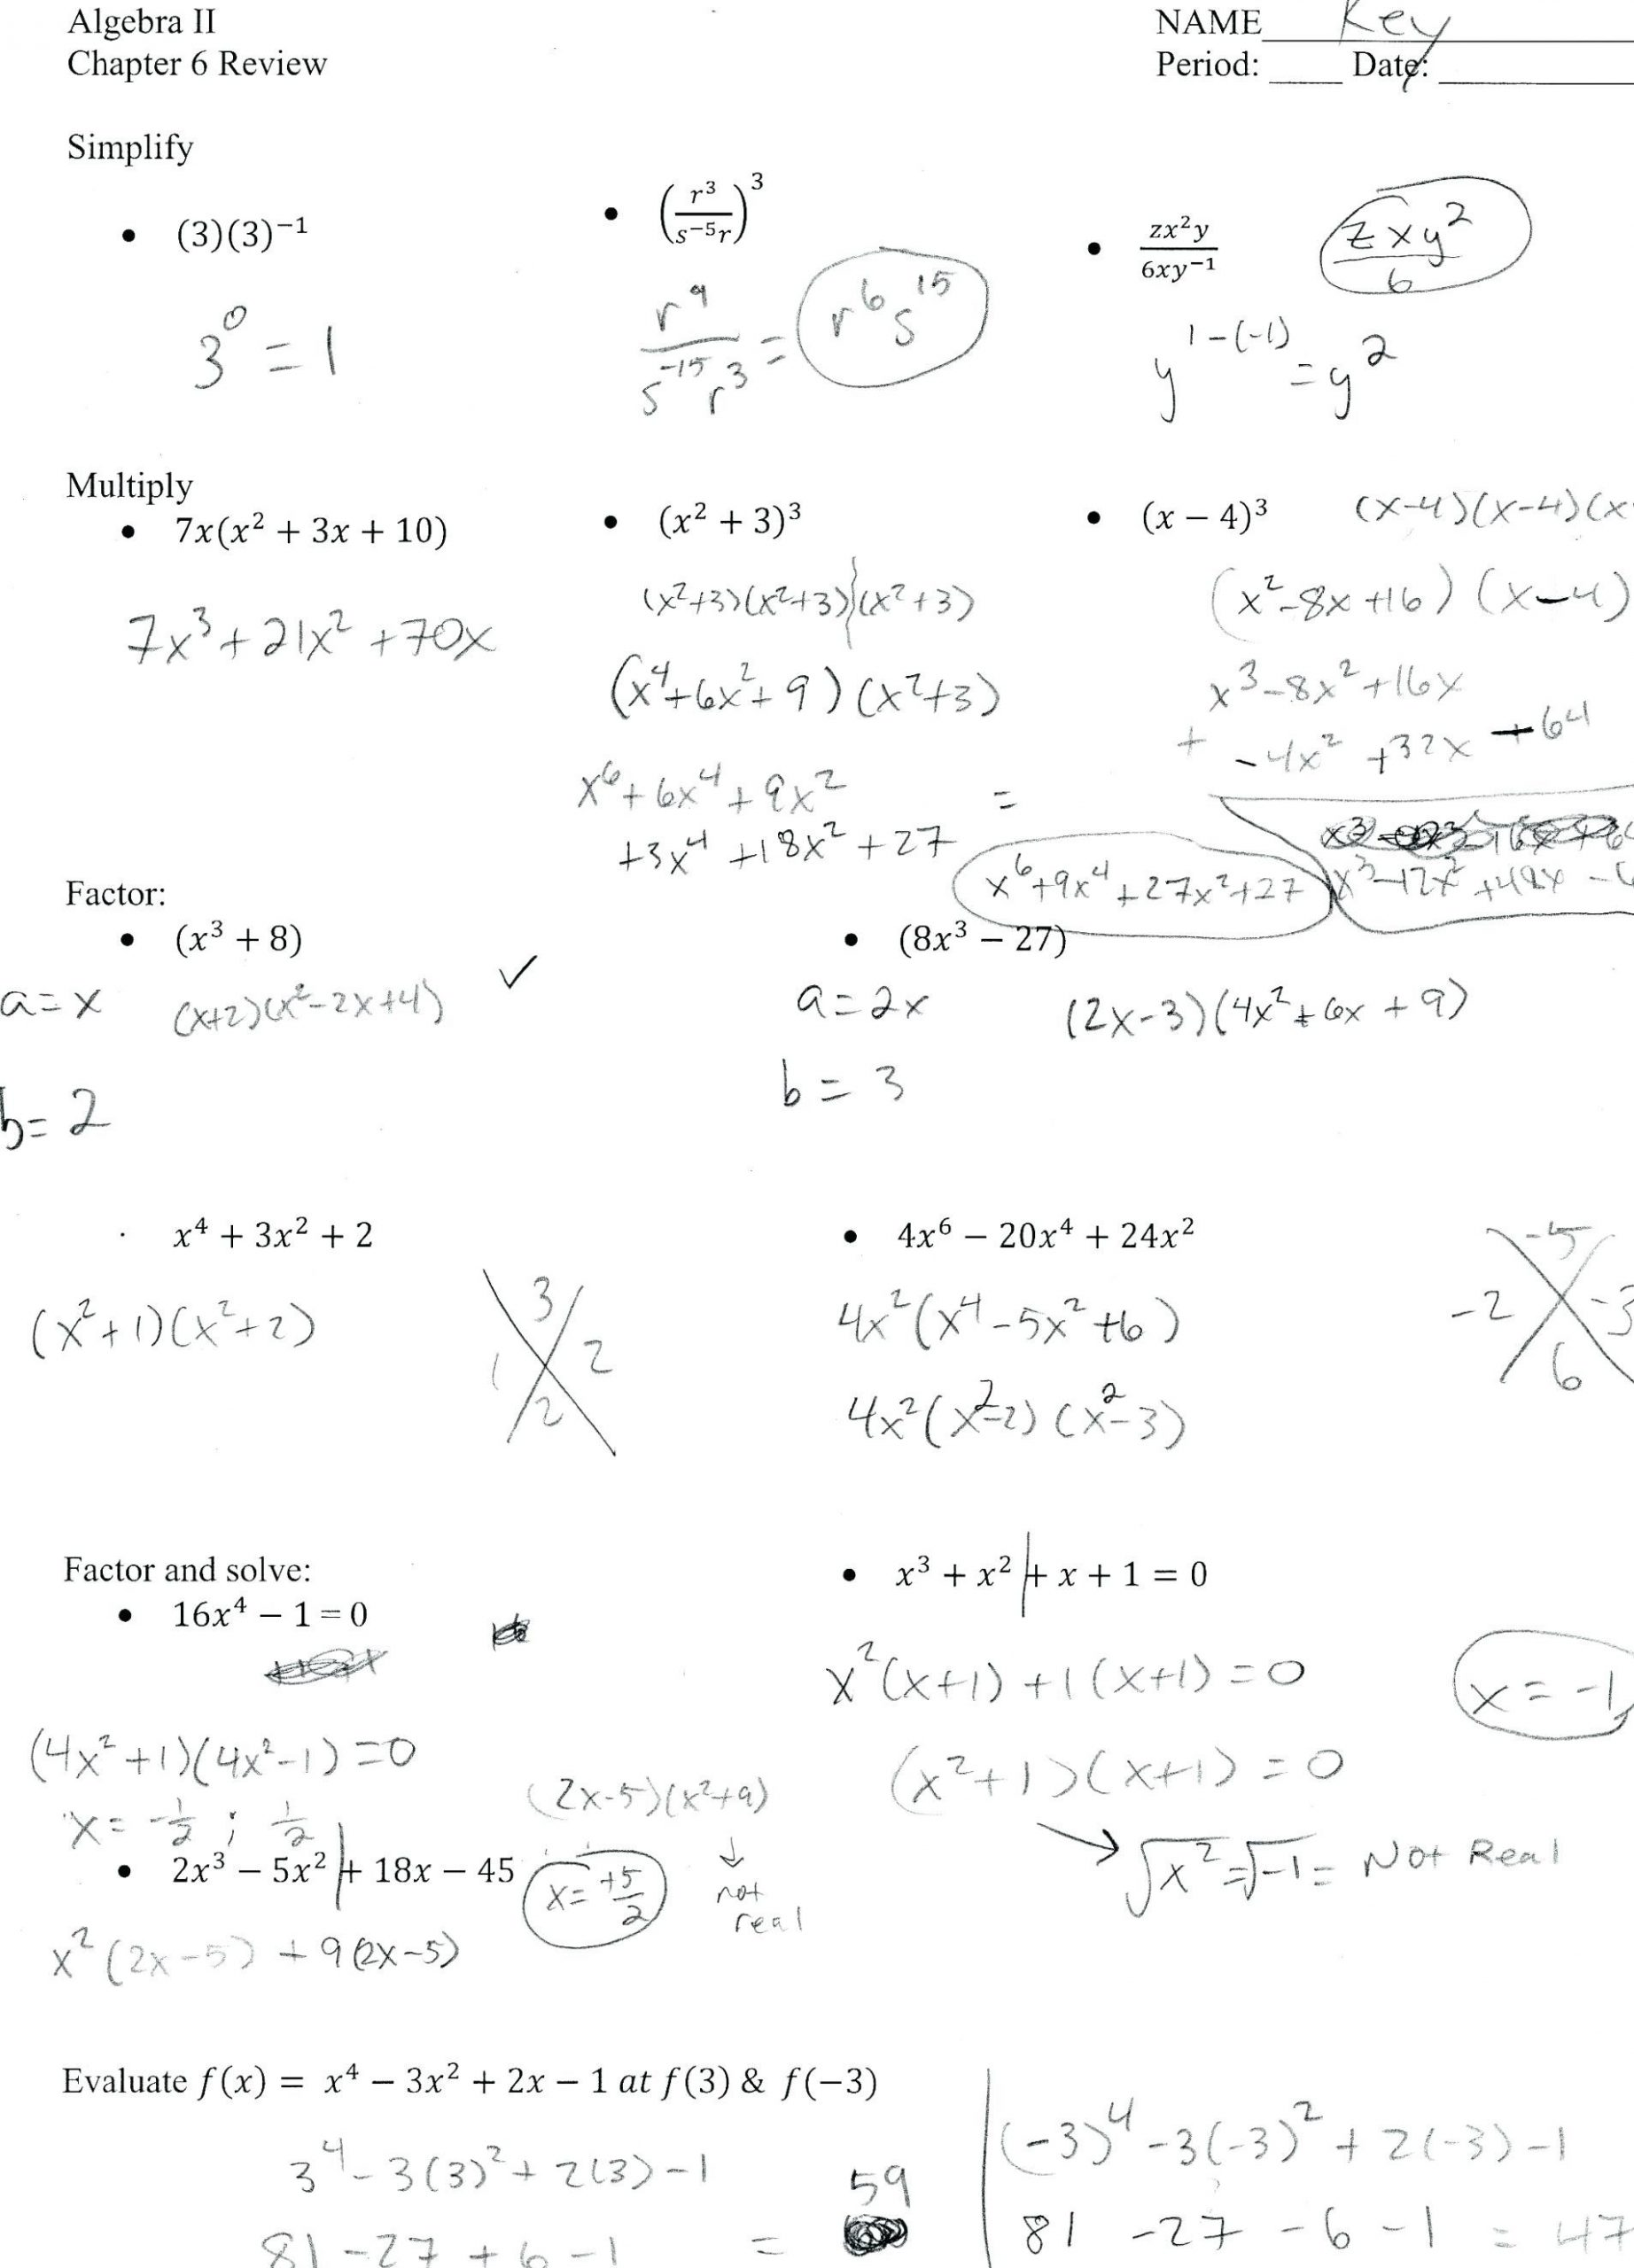 Factoring Worksheet Algebra 1 Algebra 2 Factoring Worksheet with Answers